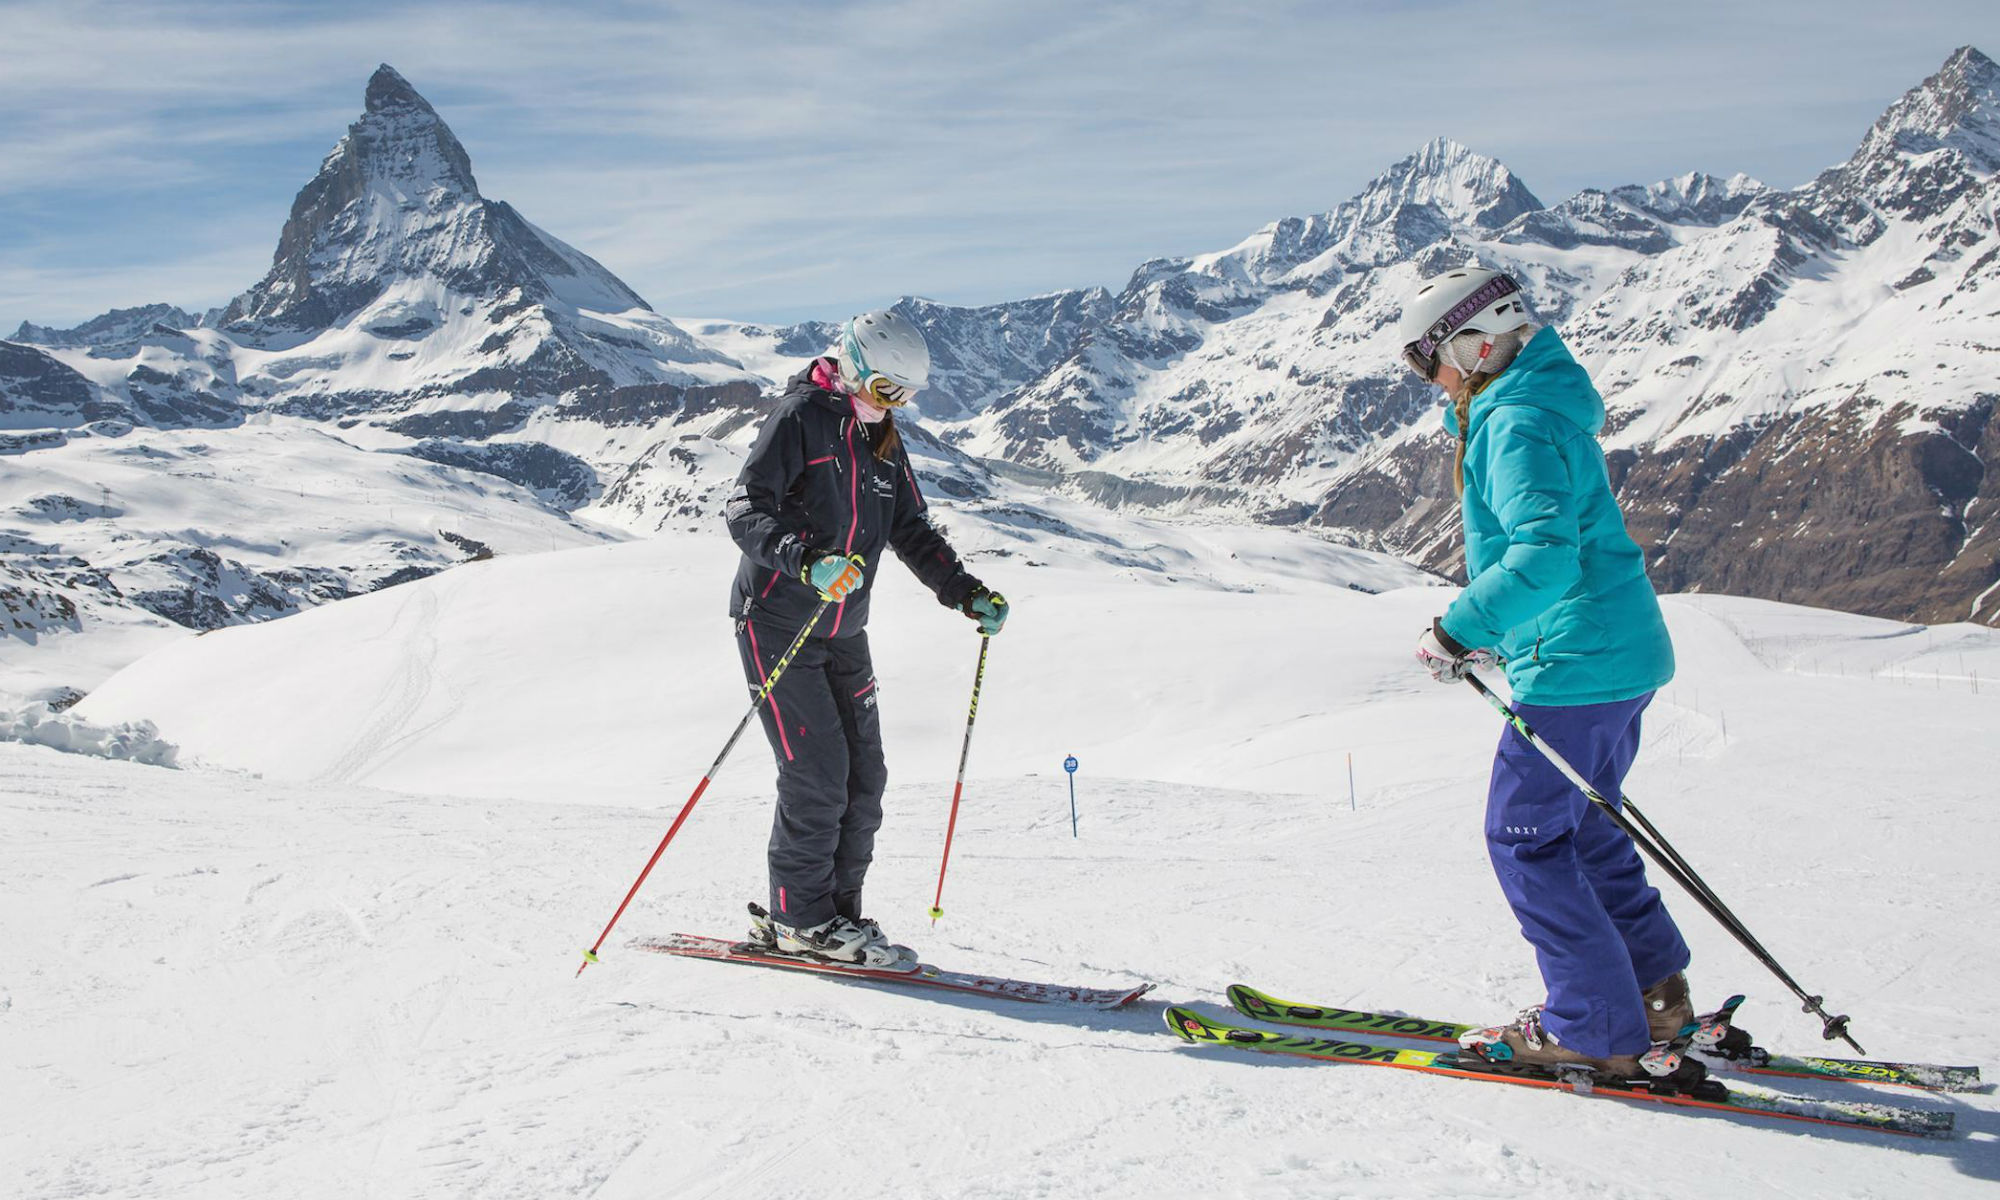 A ski instructor and a skier are standing on the piste in front of the Matterhorn in Zermatt.